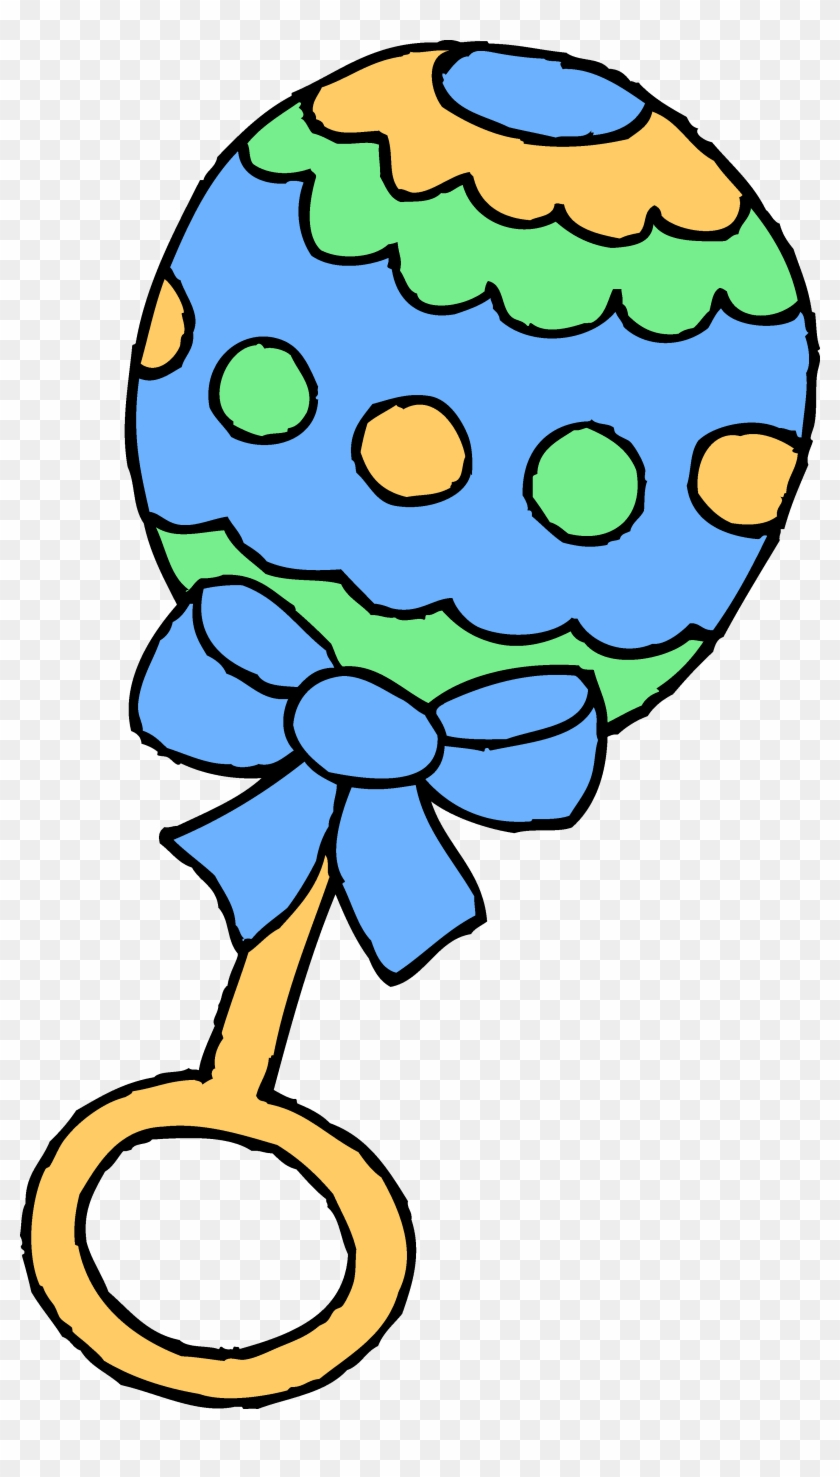 Blue Clipart Baby Toy Pencil And In Color Blue - Clip Art Baby Rattle #5761